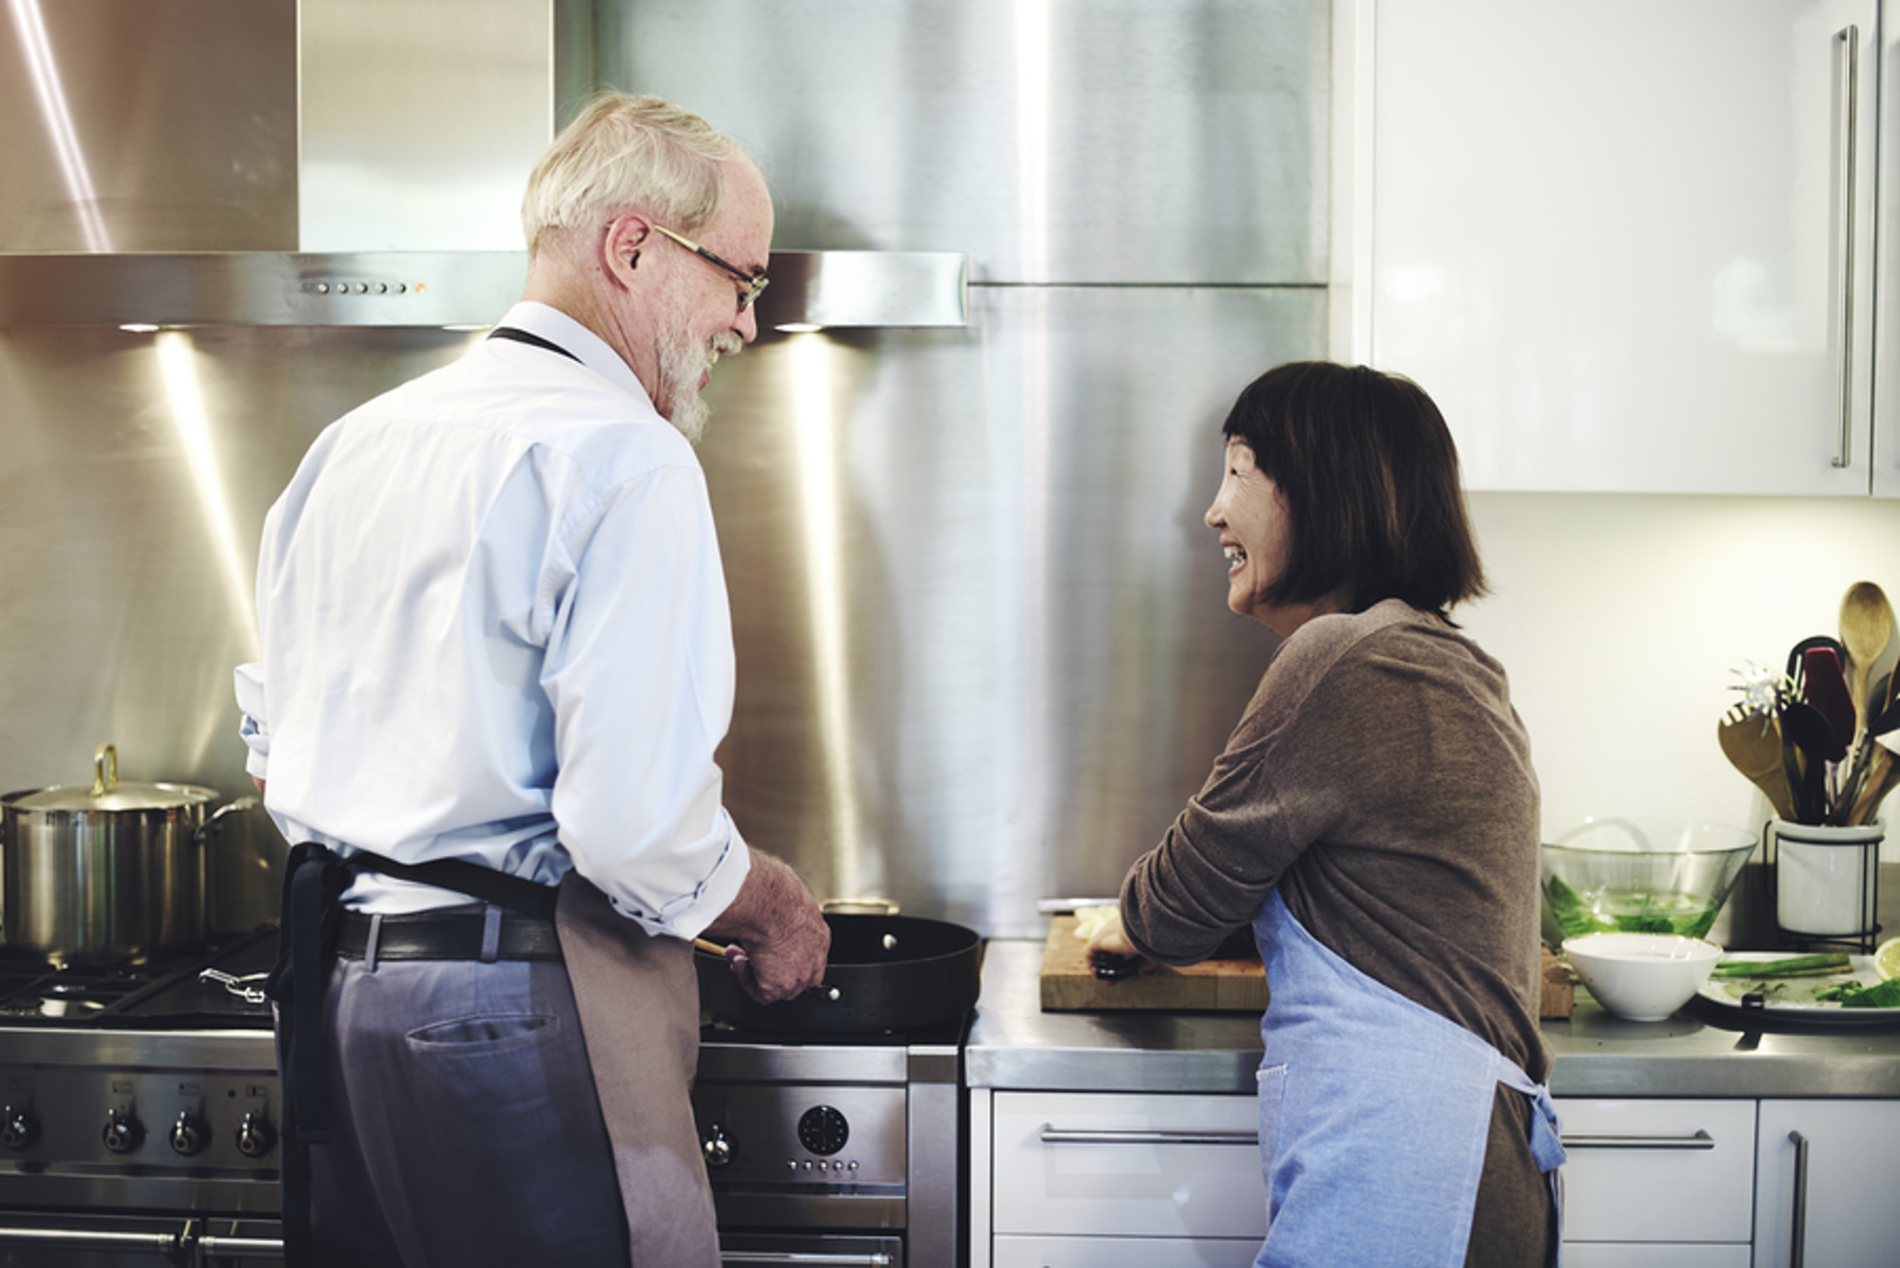 Two people cooking in a kitchen.